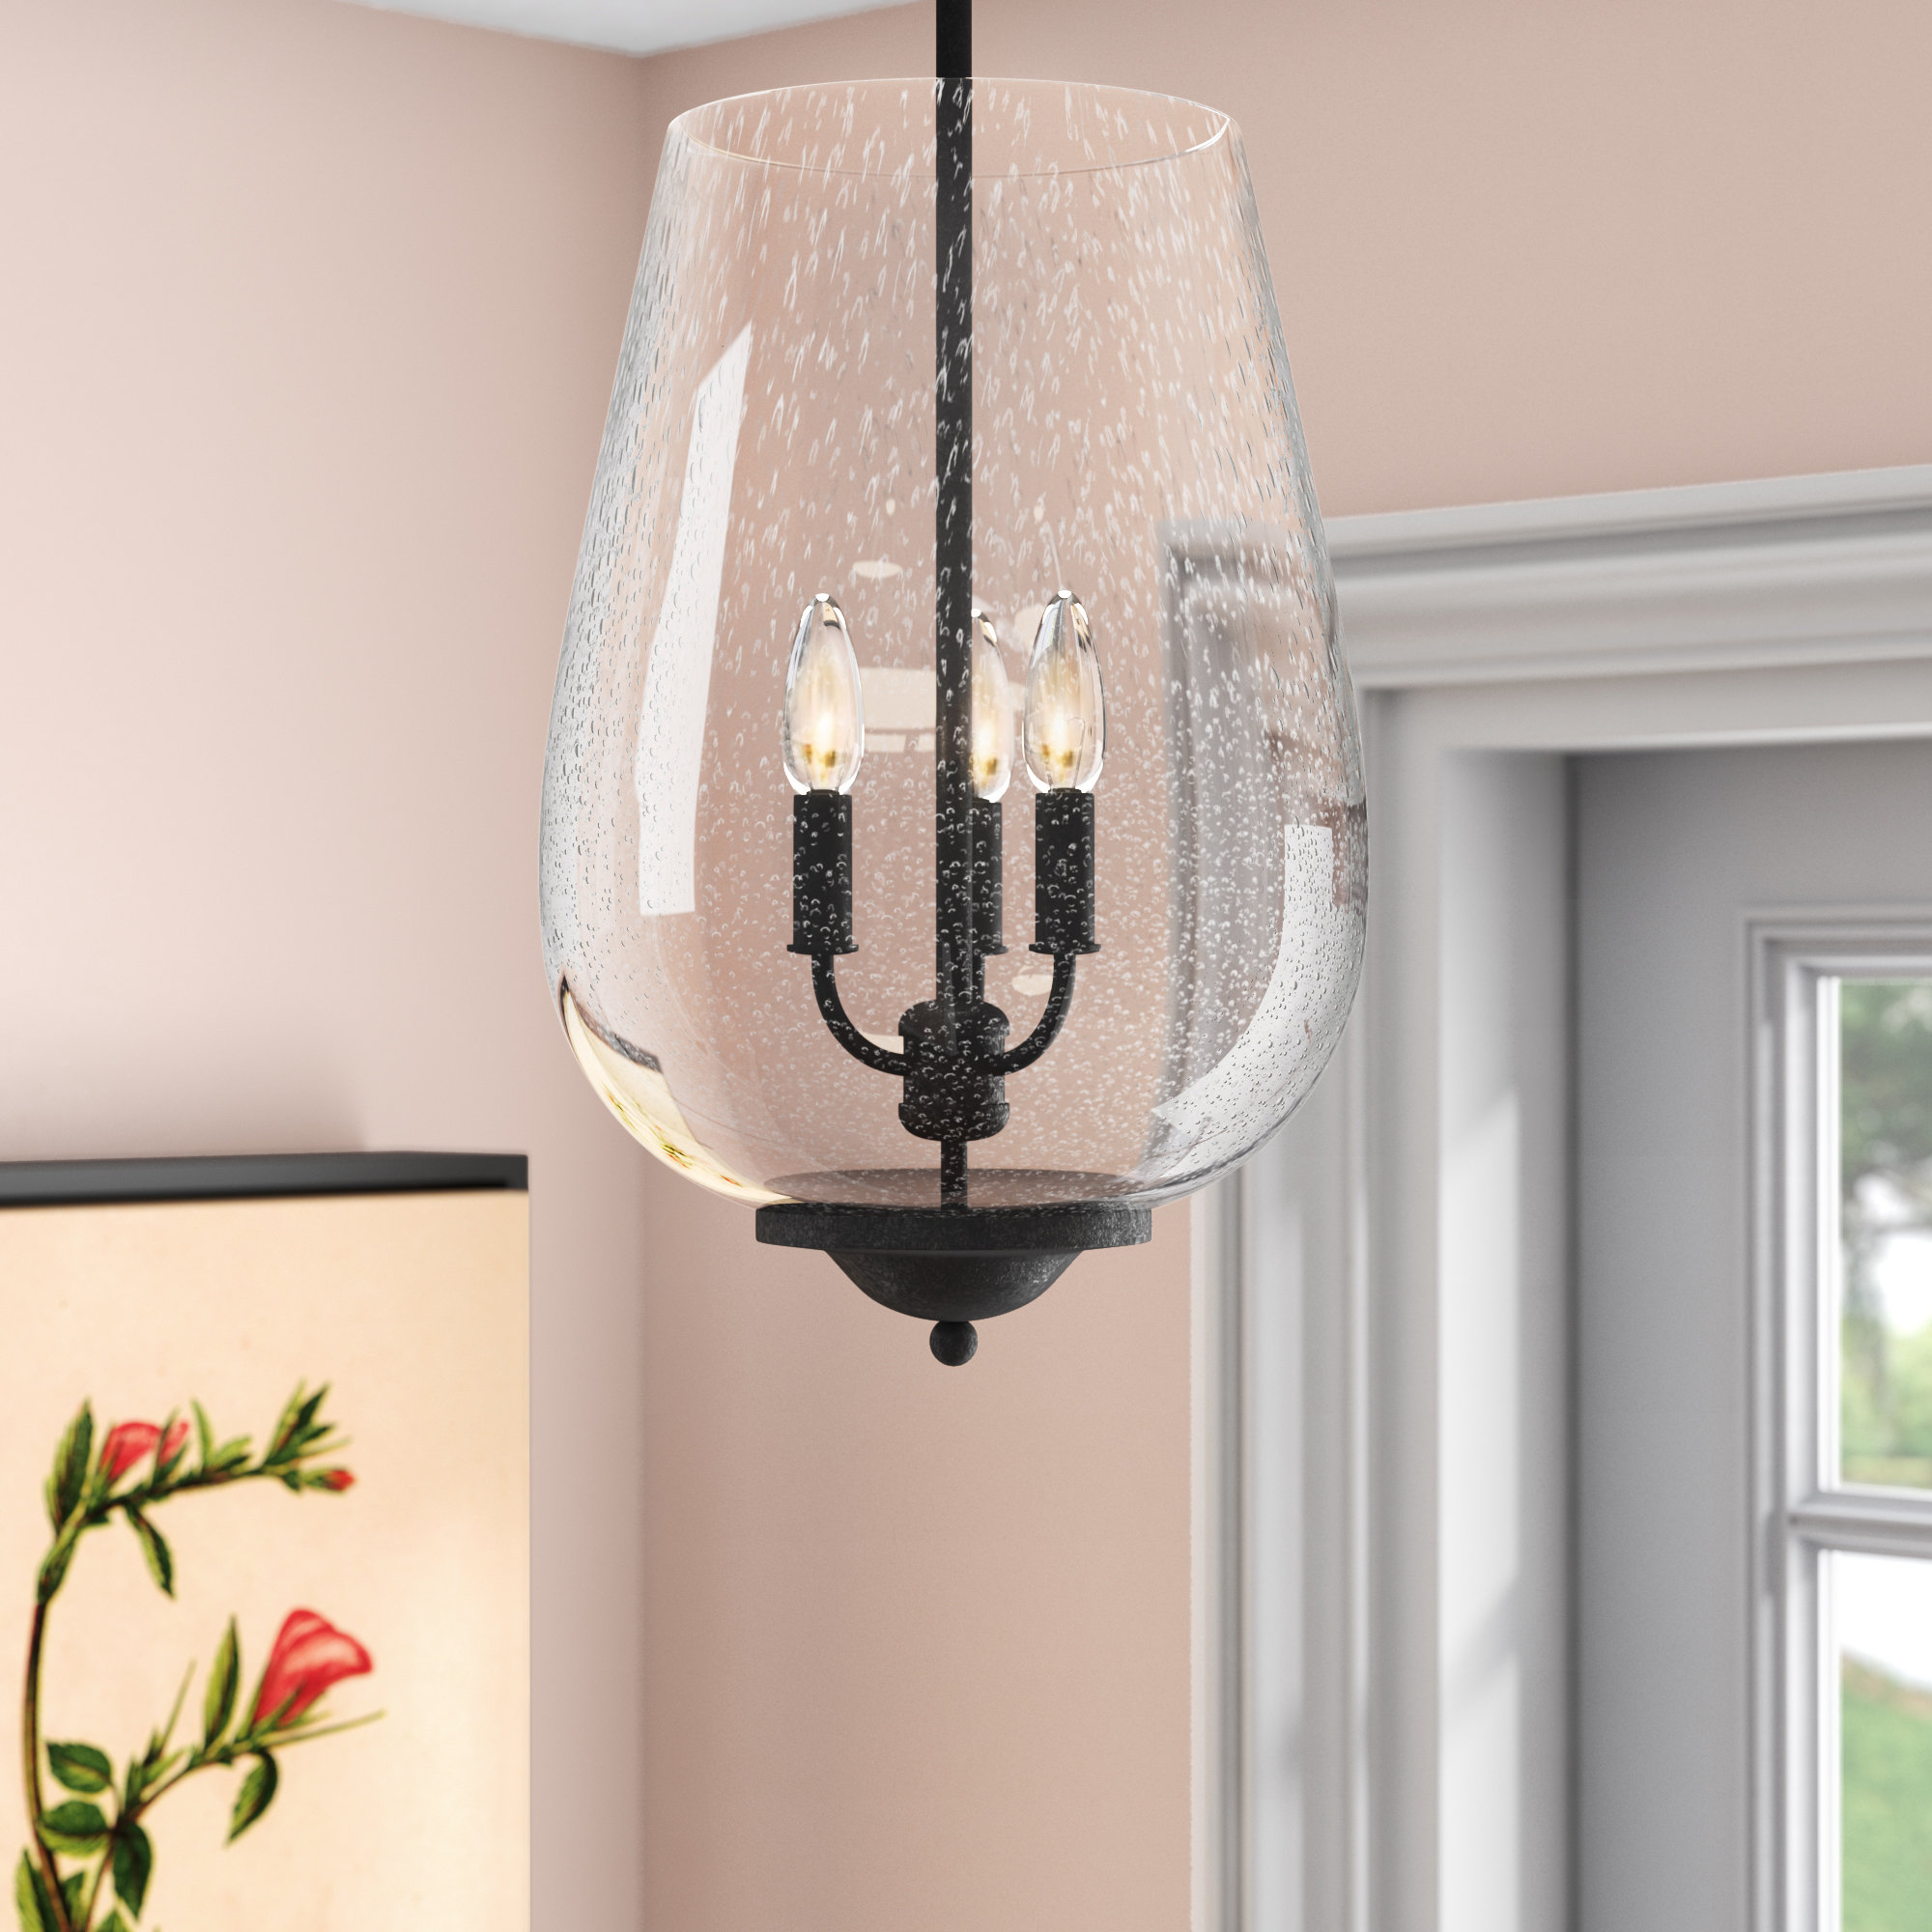 Chubbuck 3-Light Single Urn Pendant with 3-Light Single Urn Pendants (Image 7 of 30)